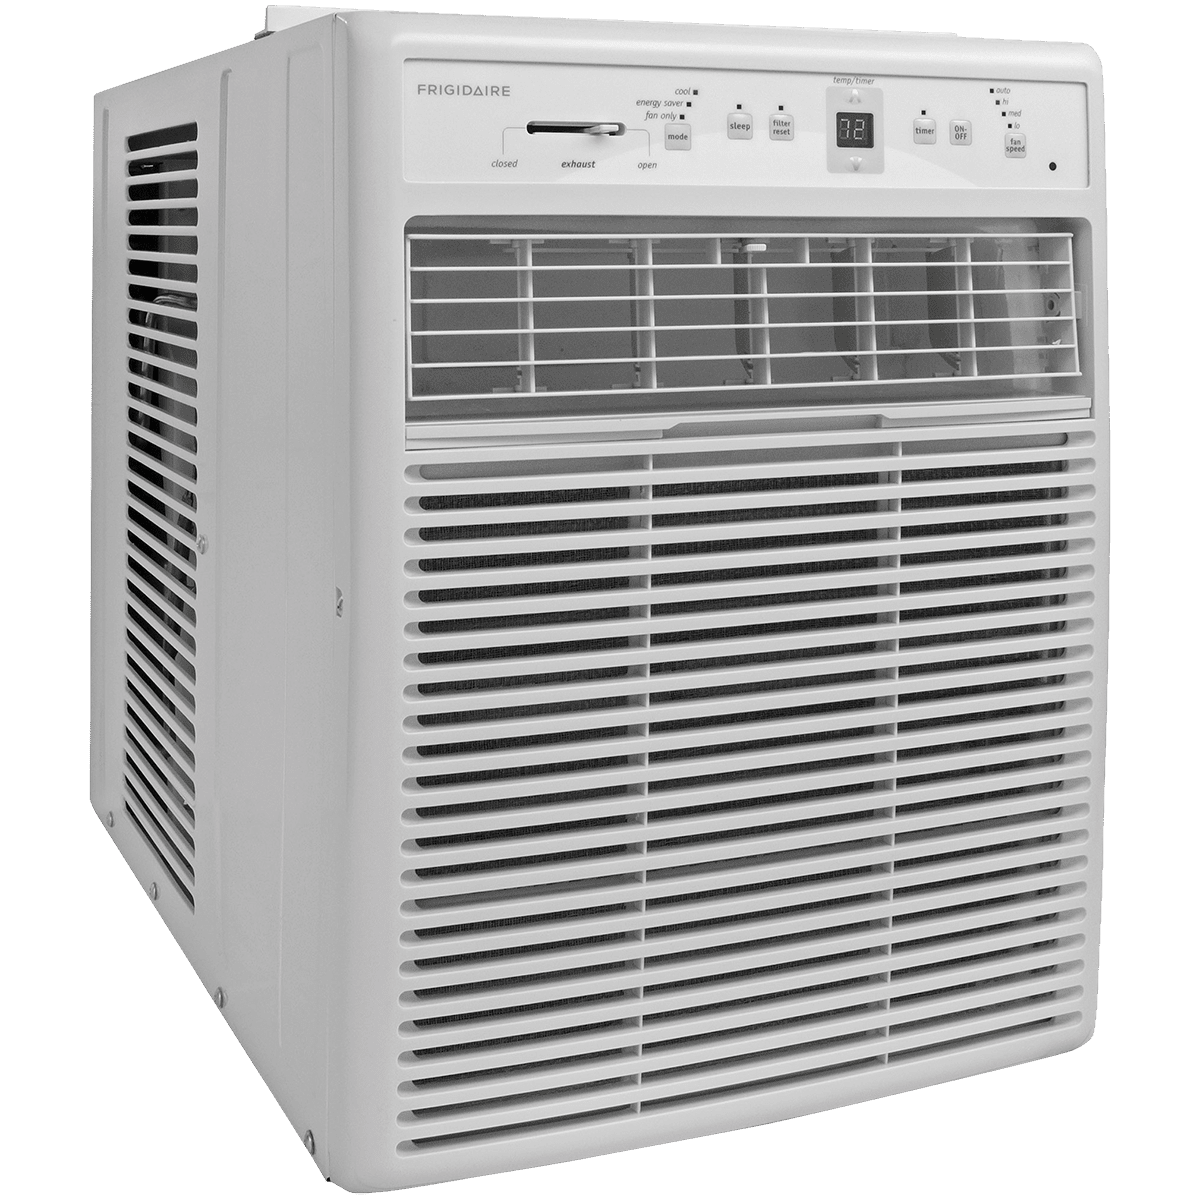 Frigidaire 8,000 BTU Casement Window Air Conditioner for sliding windows